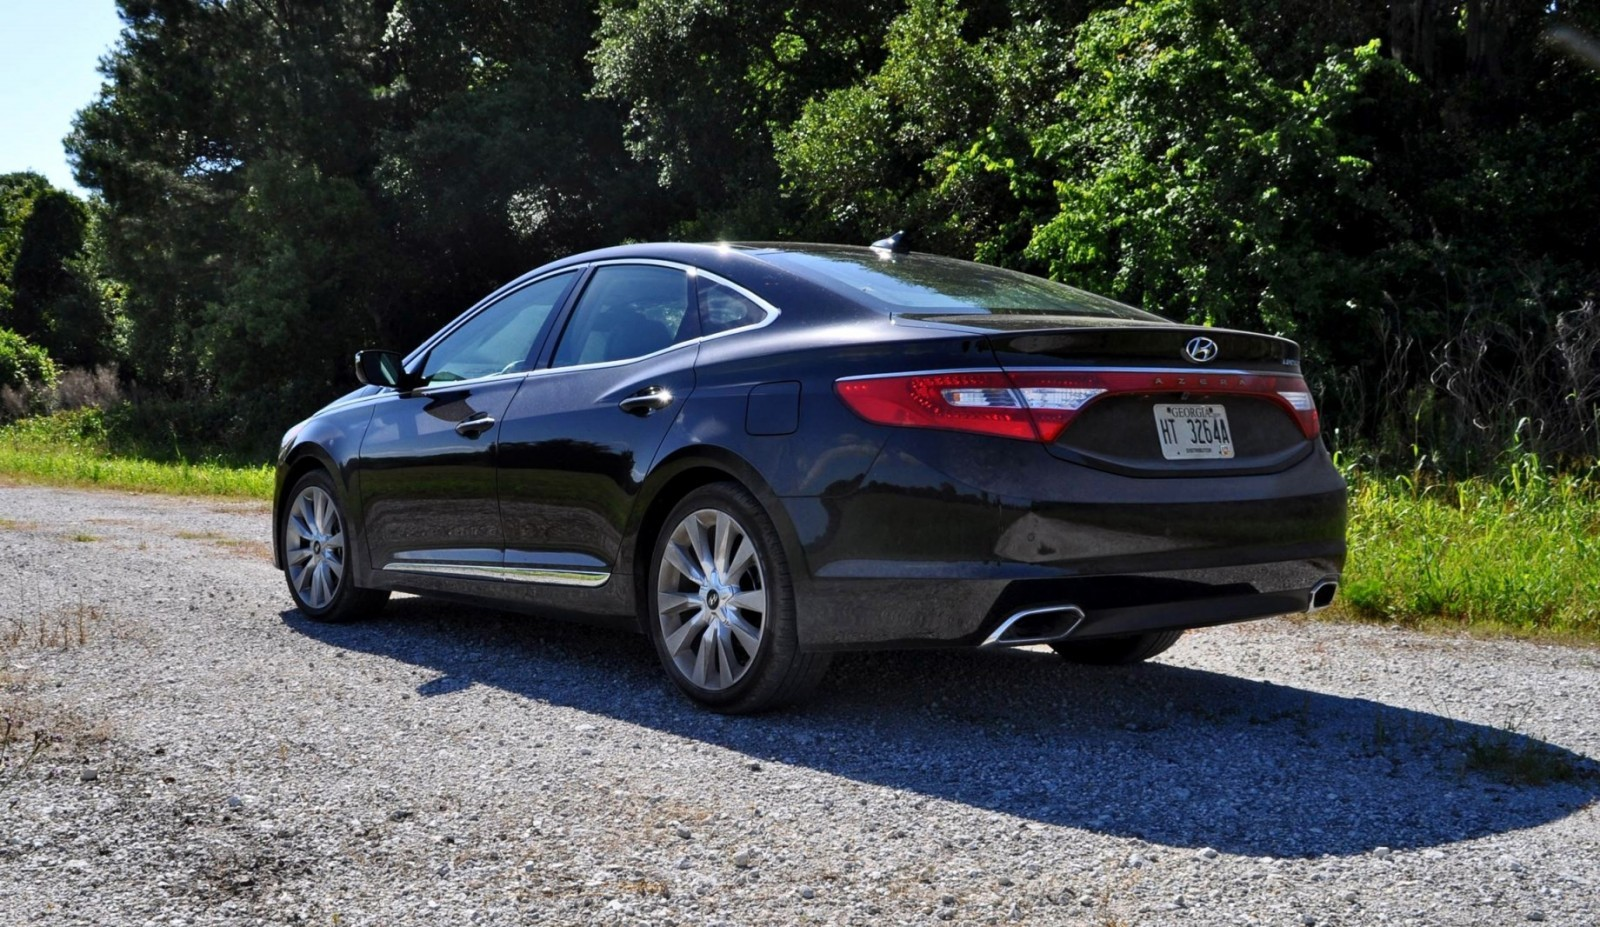 Road Test Review - 2015 Hyundai AZERA Limited 3